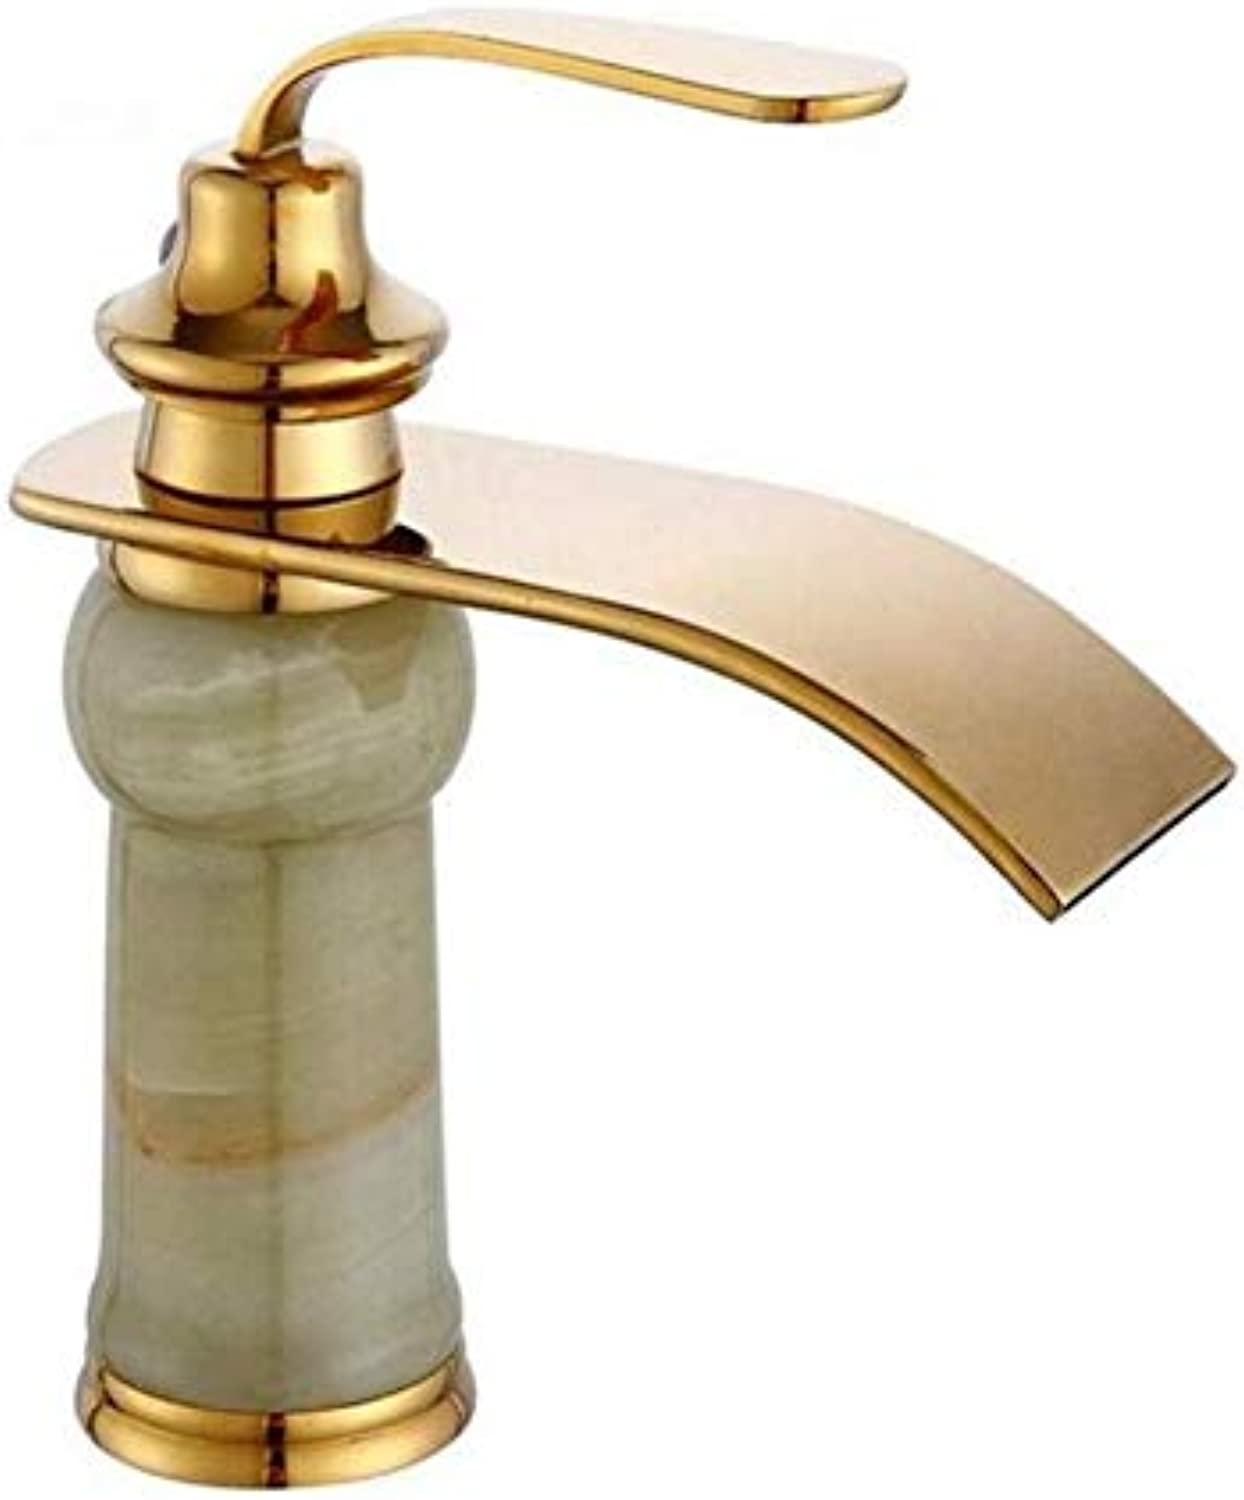 Chrome Vintage Brass Modern Hot and Cold Watermarble Basin Mixer Copper Hot and Cold gold Faucet Antique Washbasin